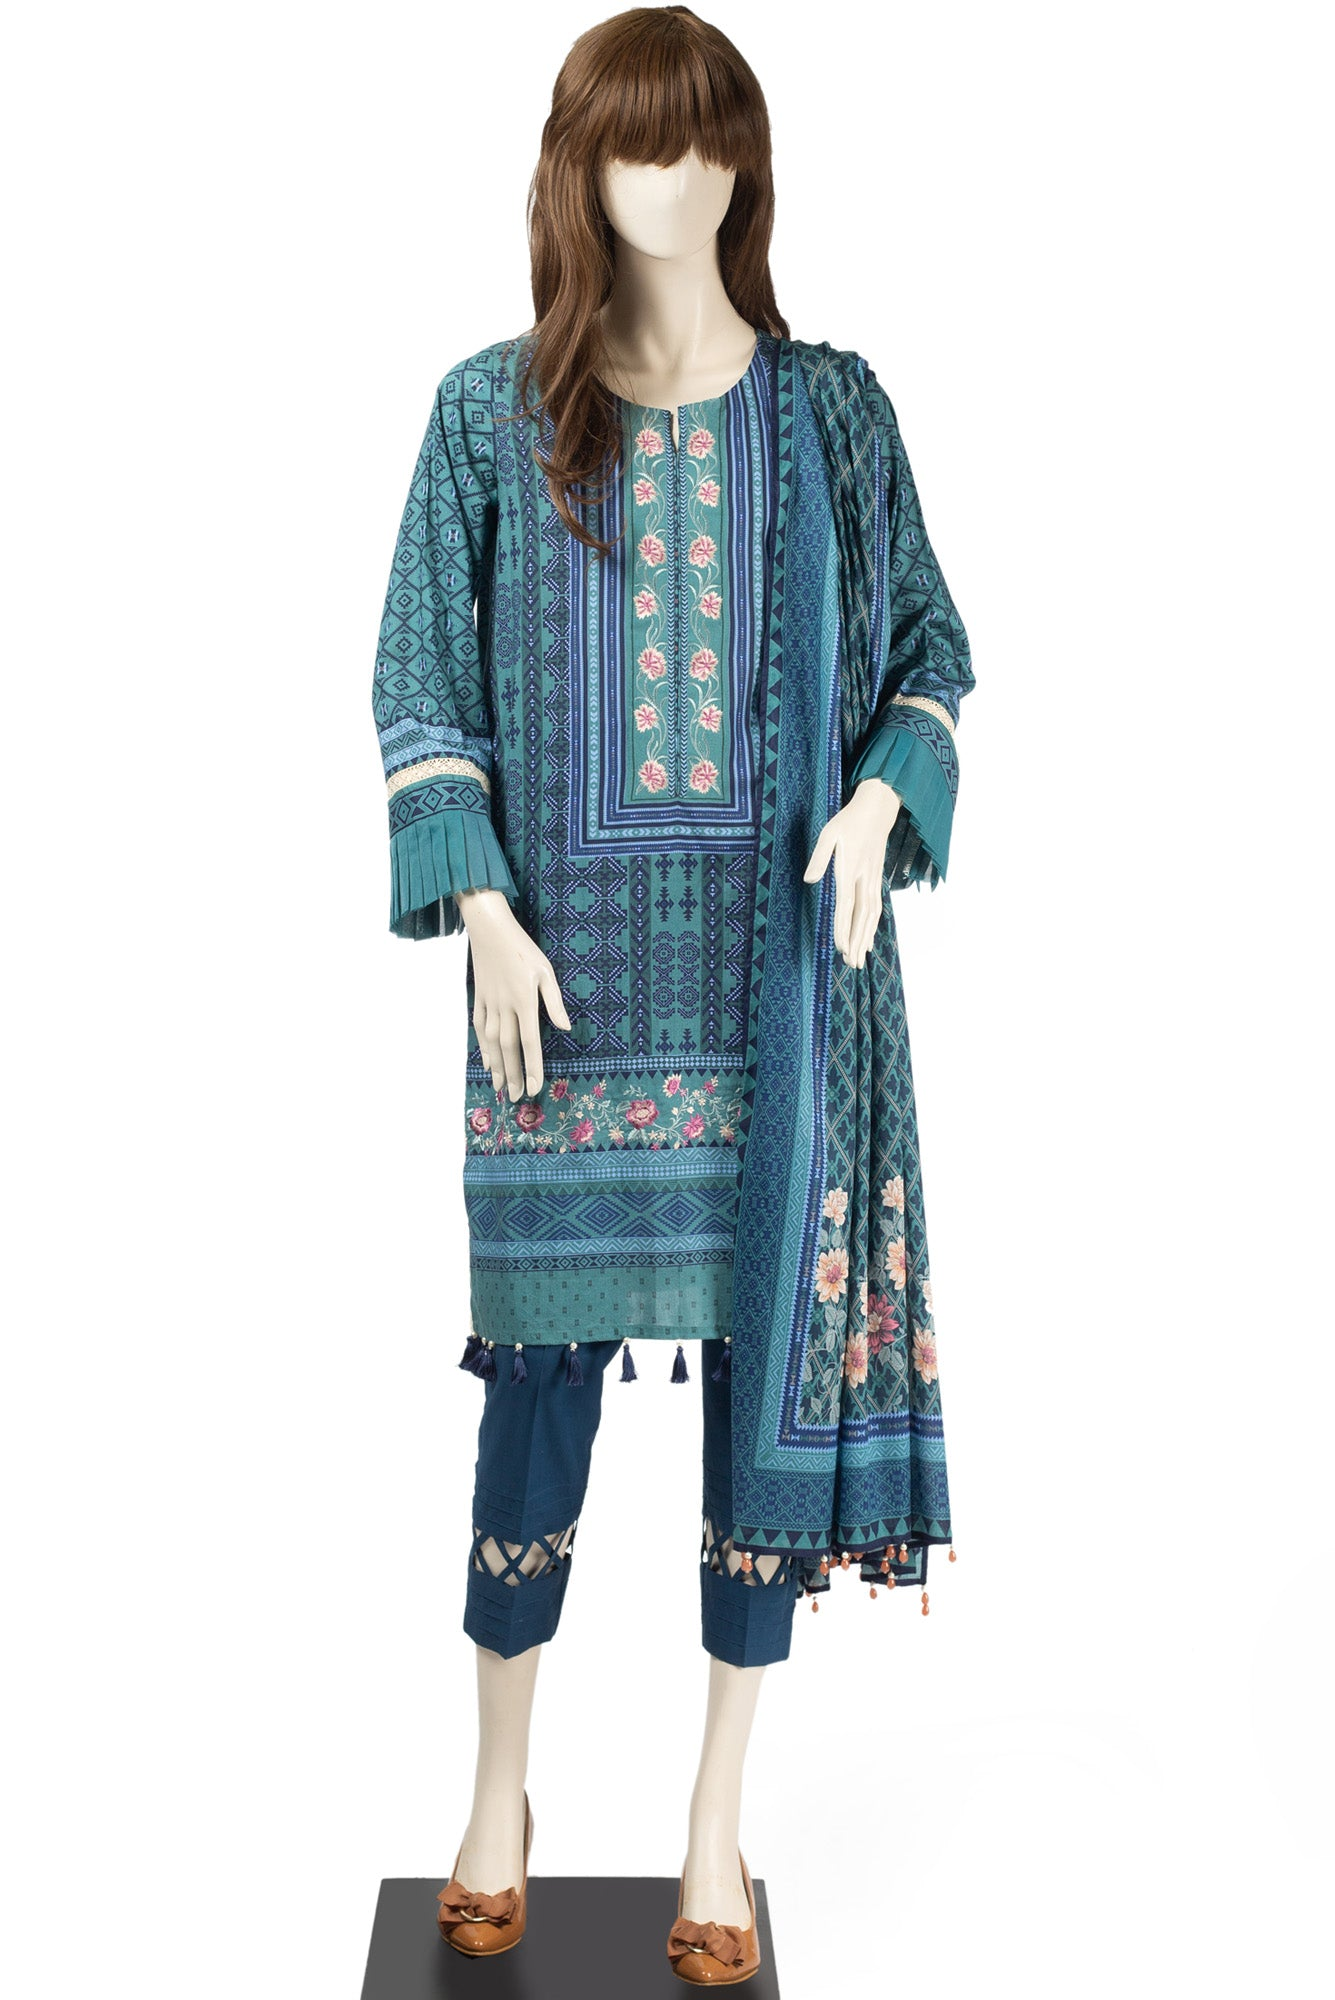 KILIM UT-1915-03B (EMBROIDERED SHIRT) - Saya